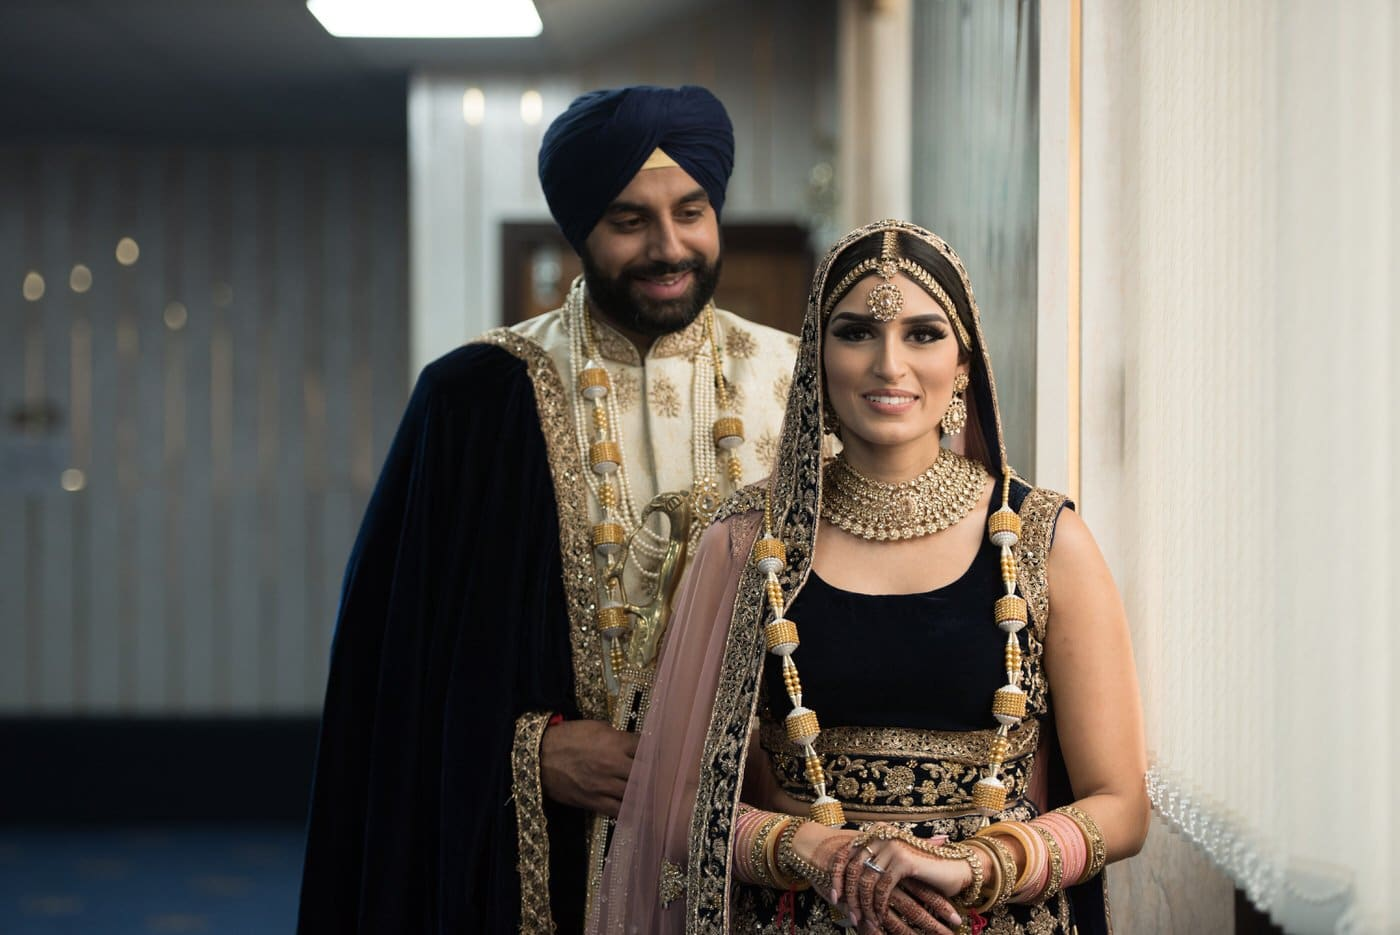 Sikh Wedding Photography & Videography at Goosedale, Nottingham // Nuvee and Sunny